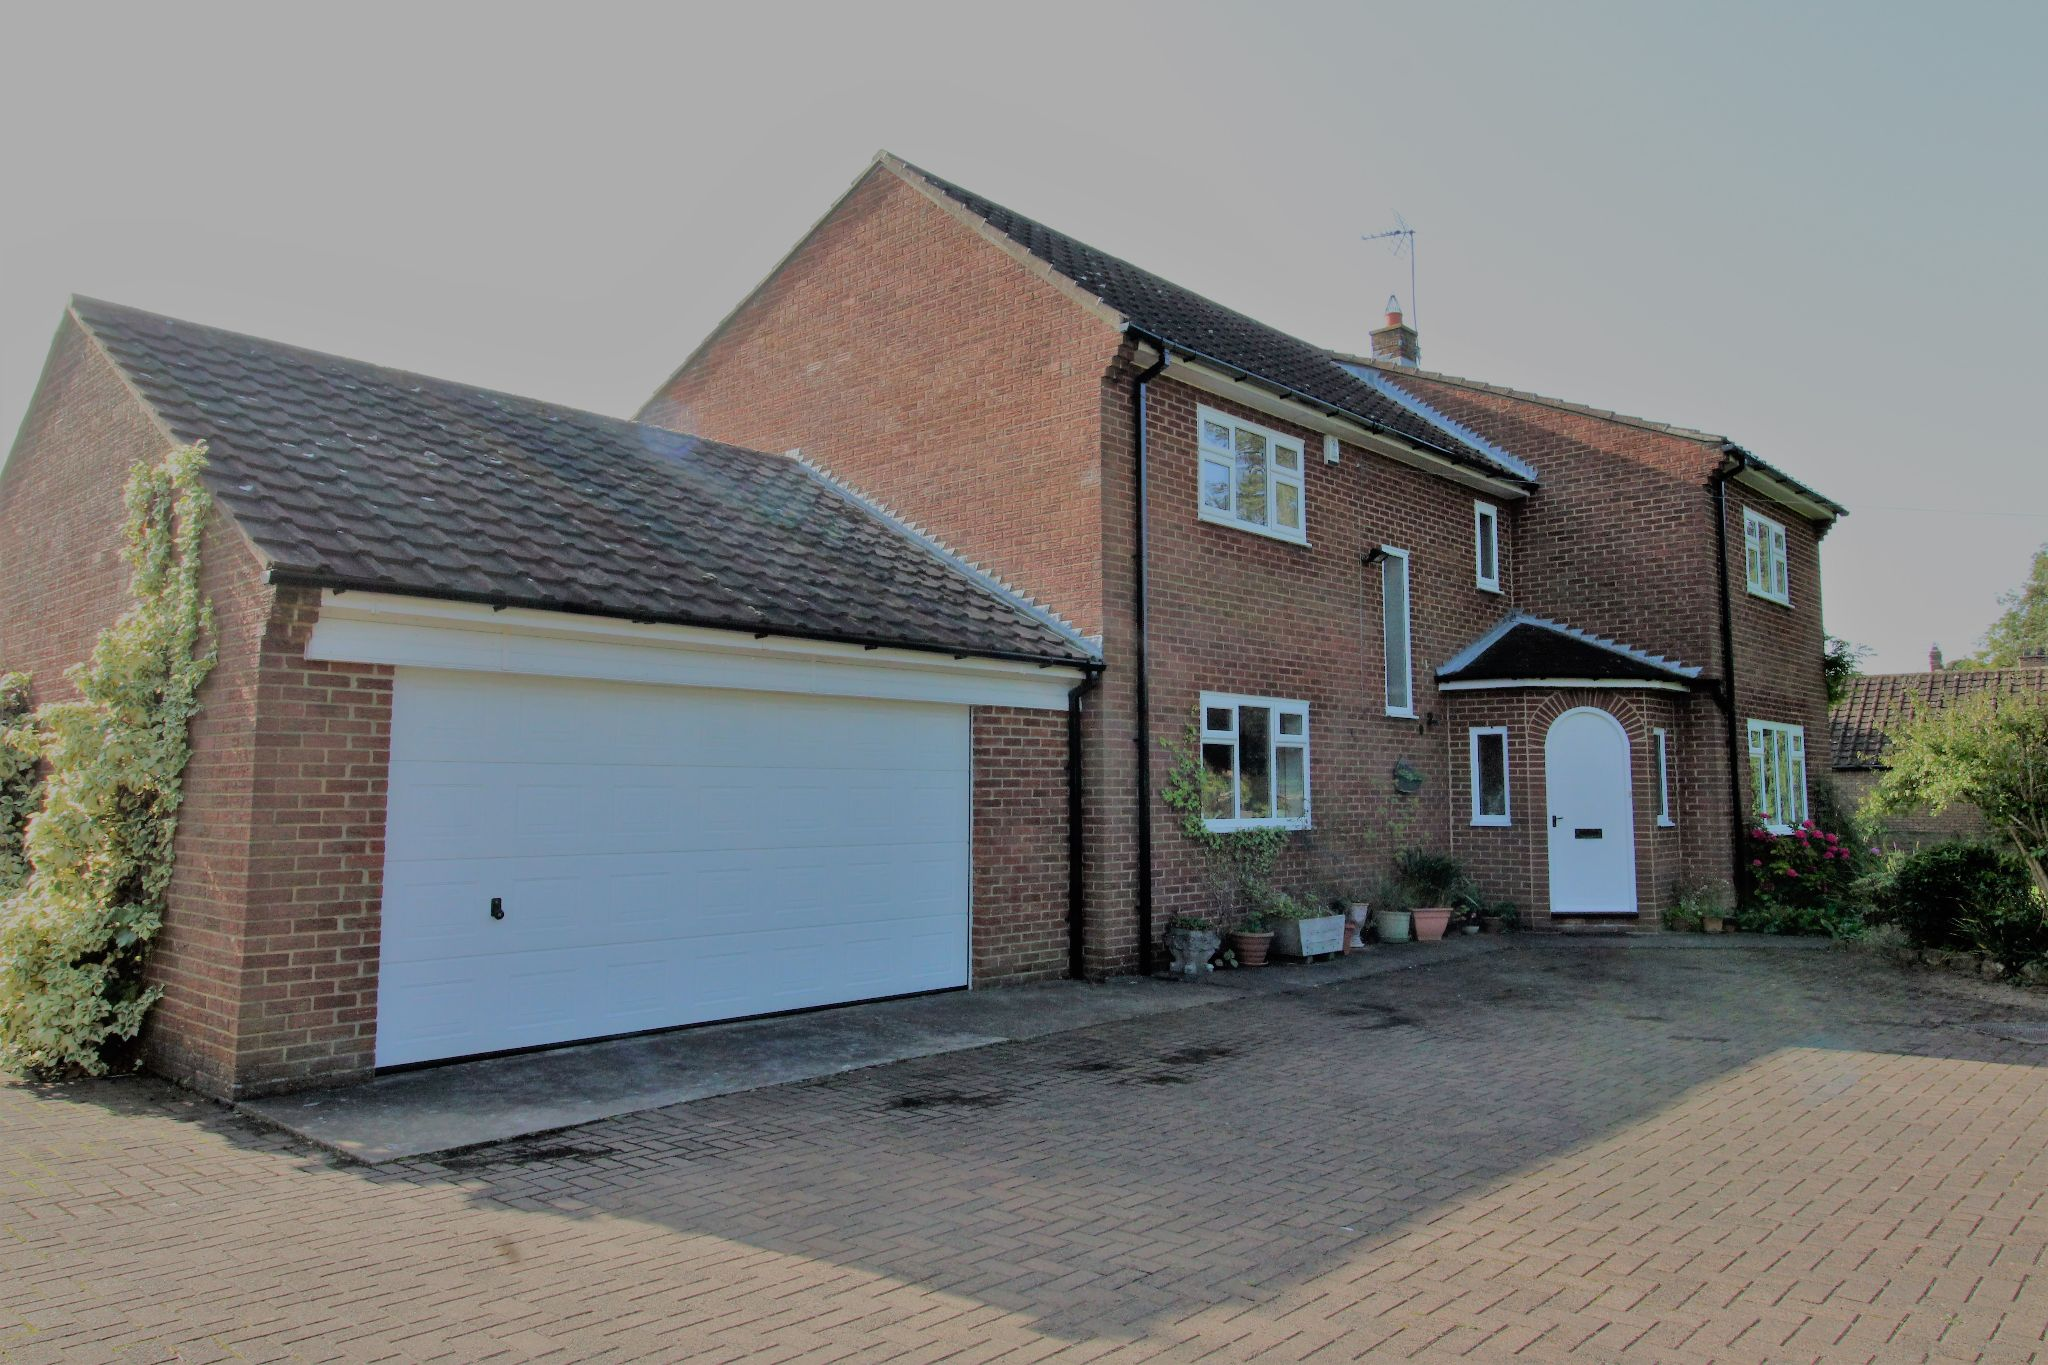 4 bedroom detached house For Sale in Willington - Front.